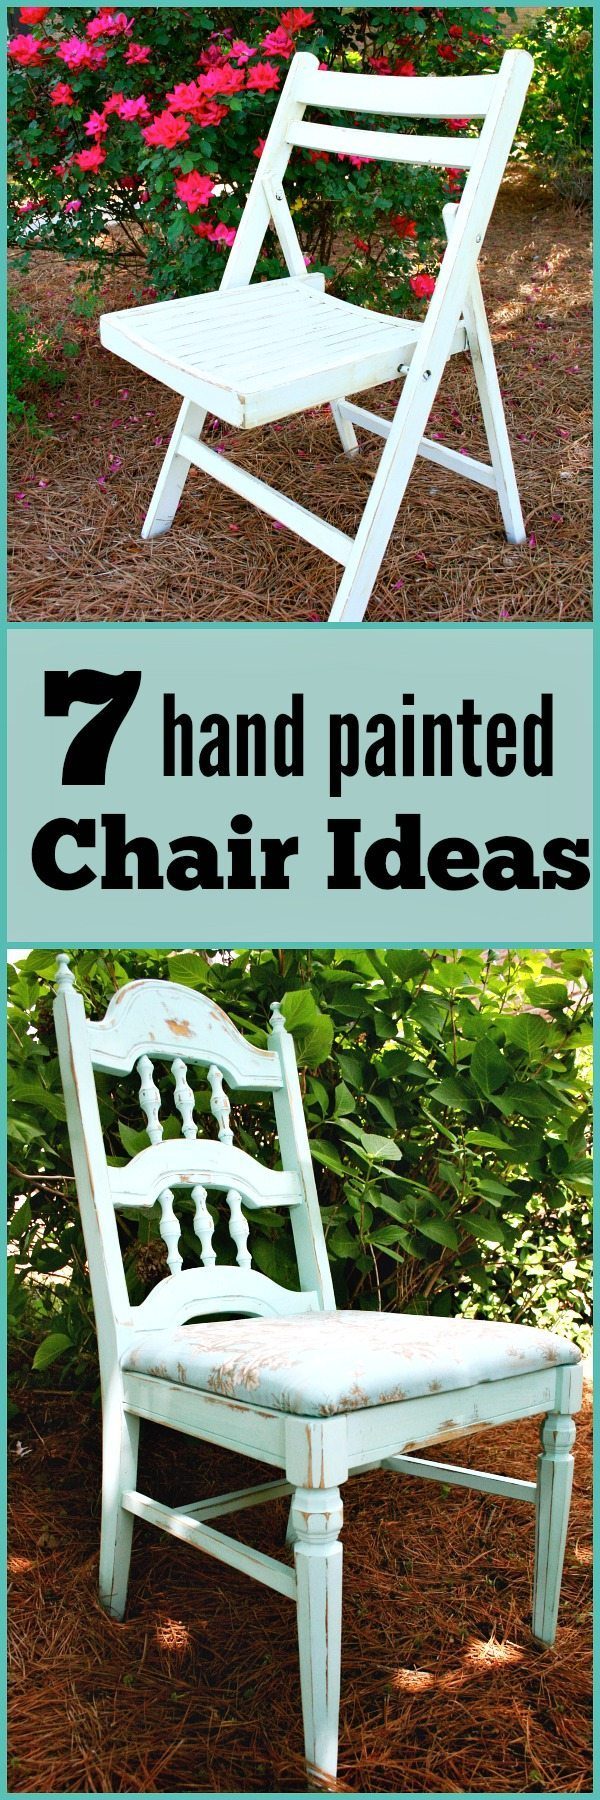 desk chair at walmart upholstered folding chairs hand painted ideas | refresh restyle